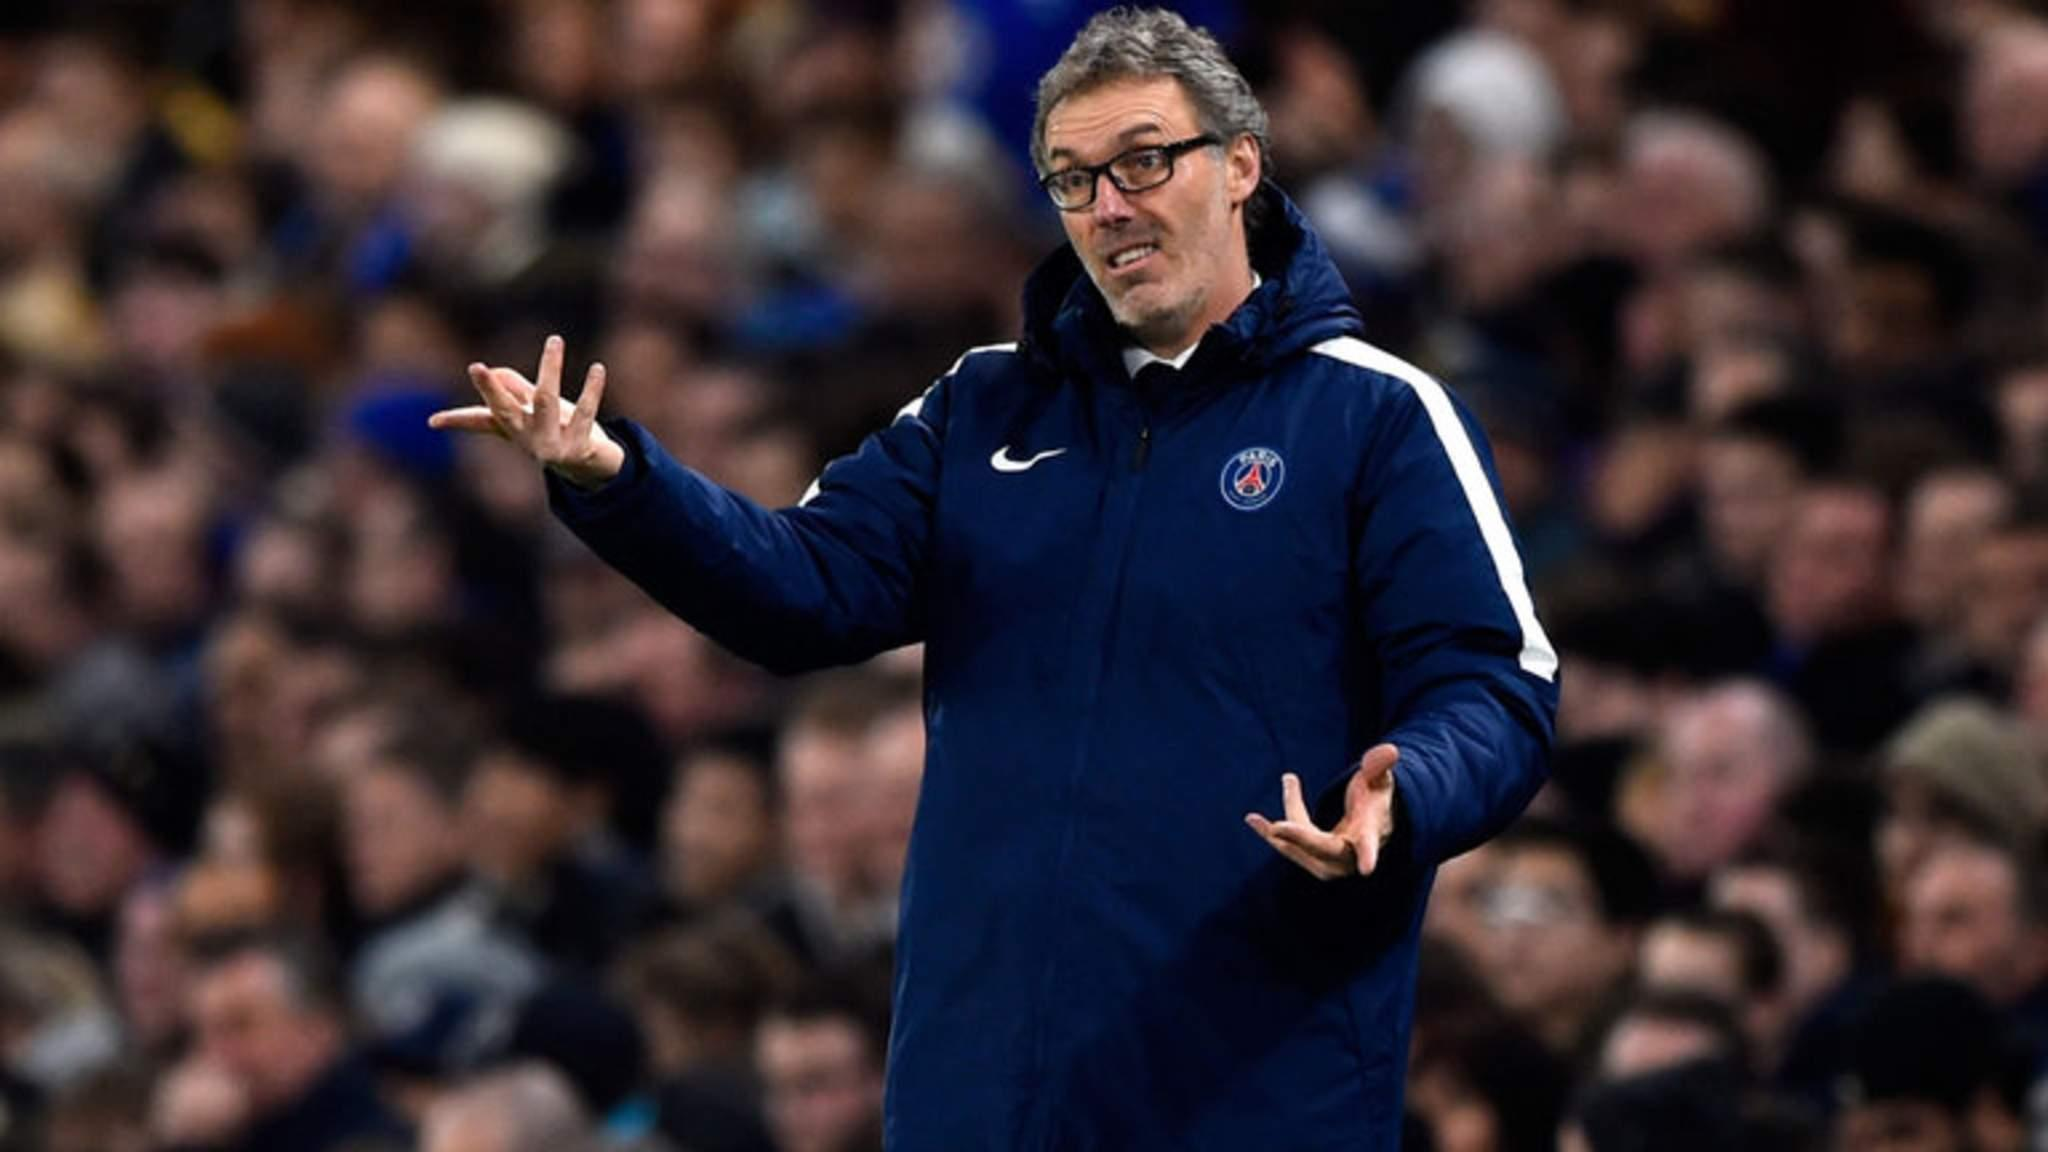 Blanc Leaves Psg As Club Changes Course